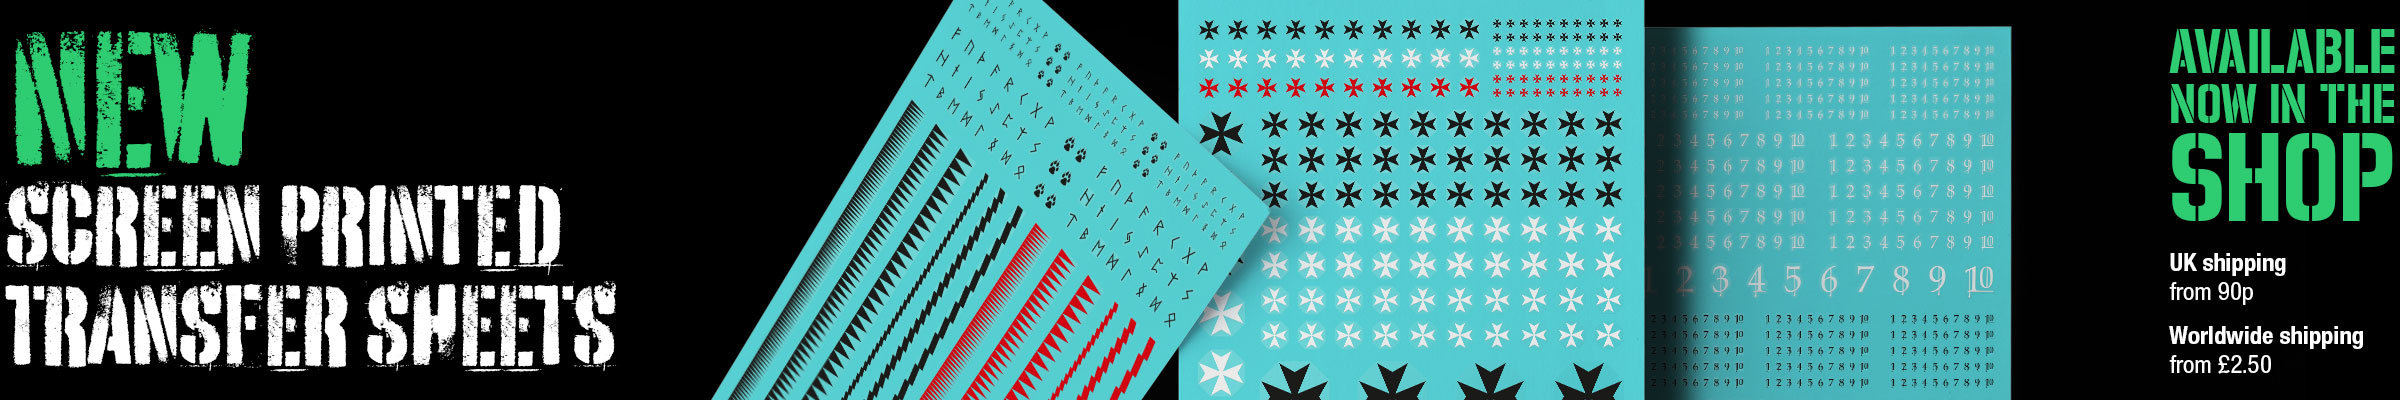 New screen printed transfer sheets now available in the shop